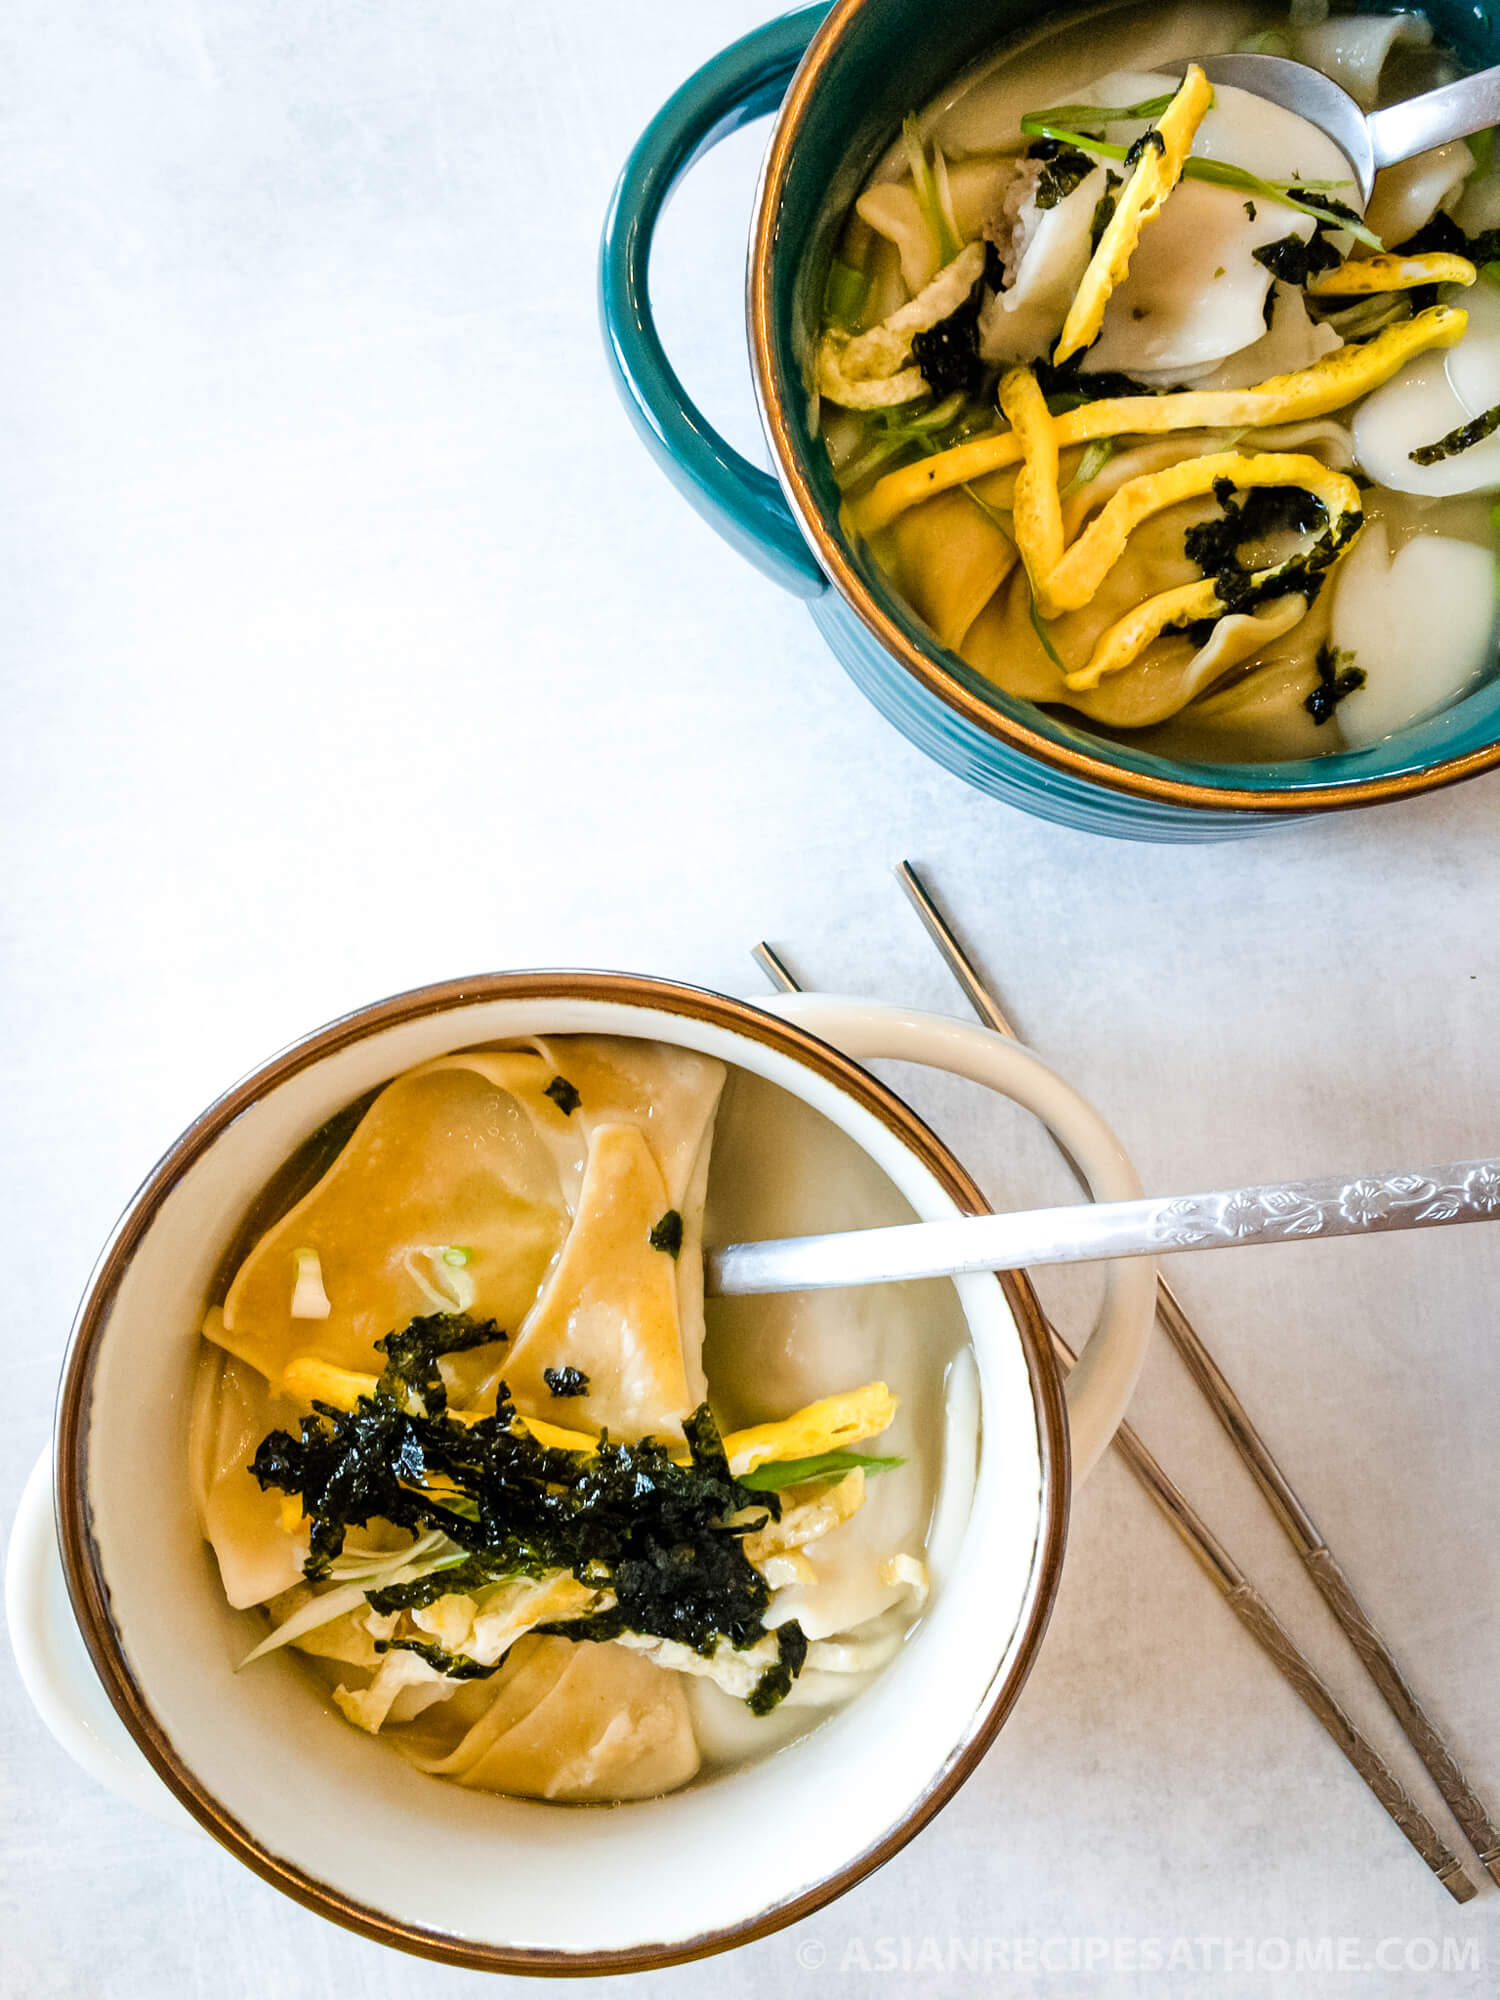 Korean rice cake soup is a savory and delicious soup made of sliced rice cakes and dumplings in a clear broth.